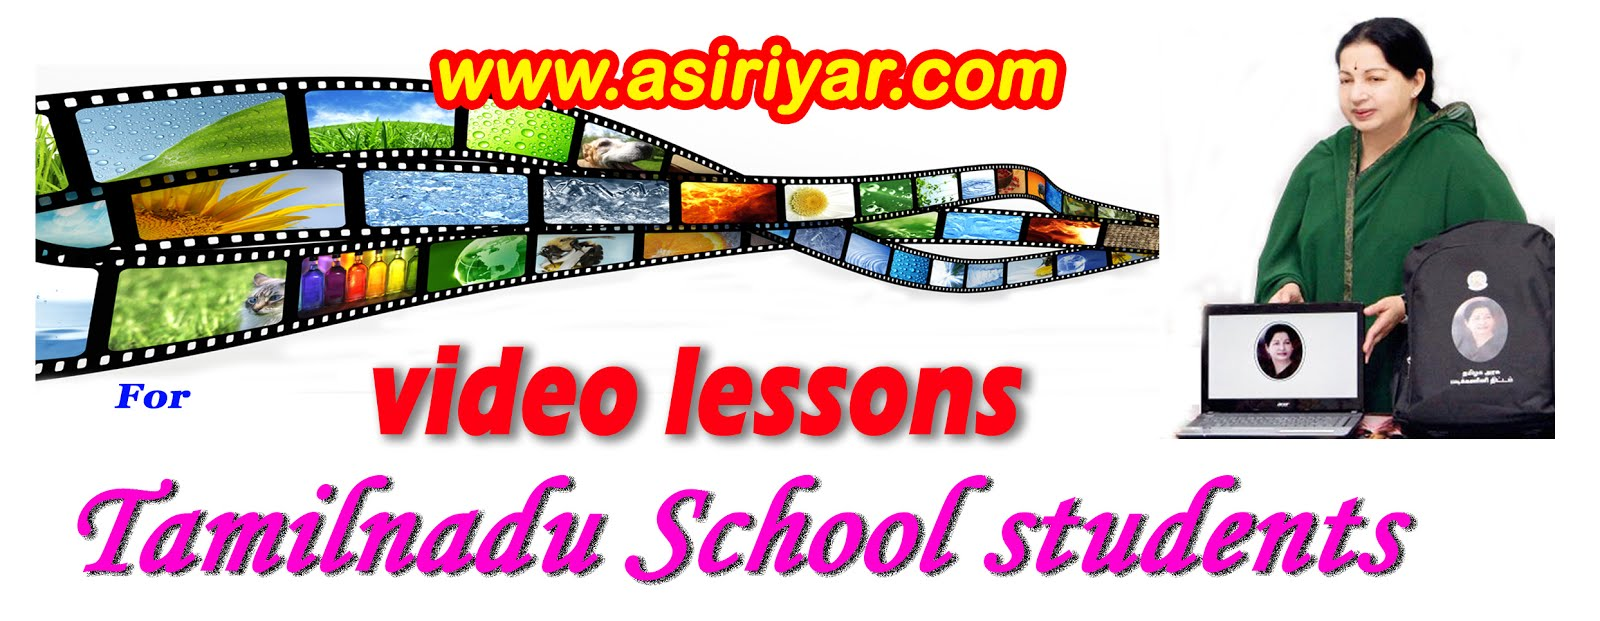 TAMILNADU SCHOOL VIDEO LESSONS